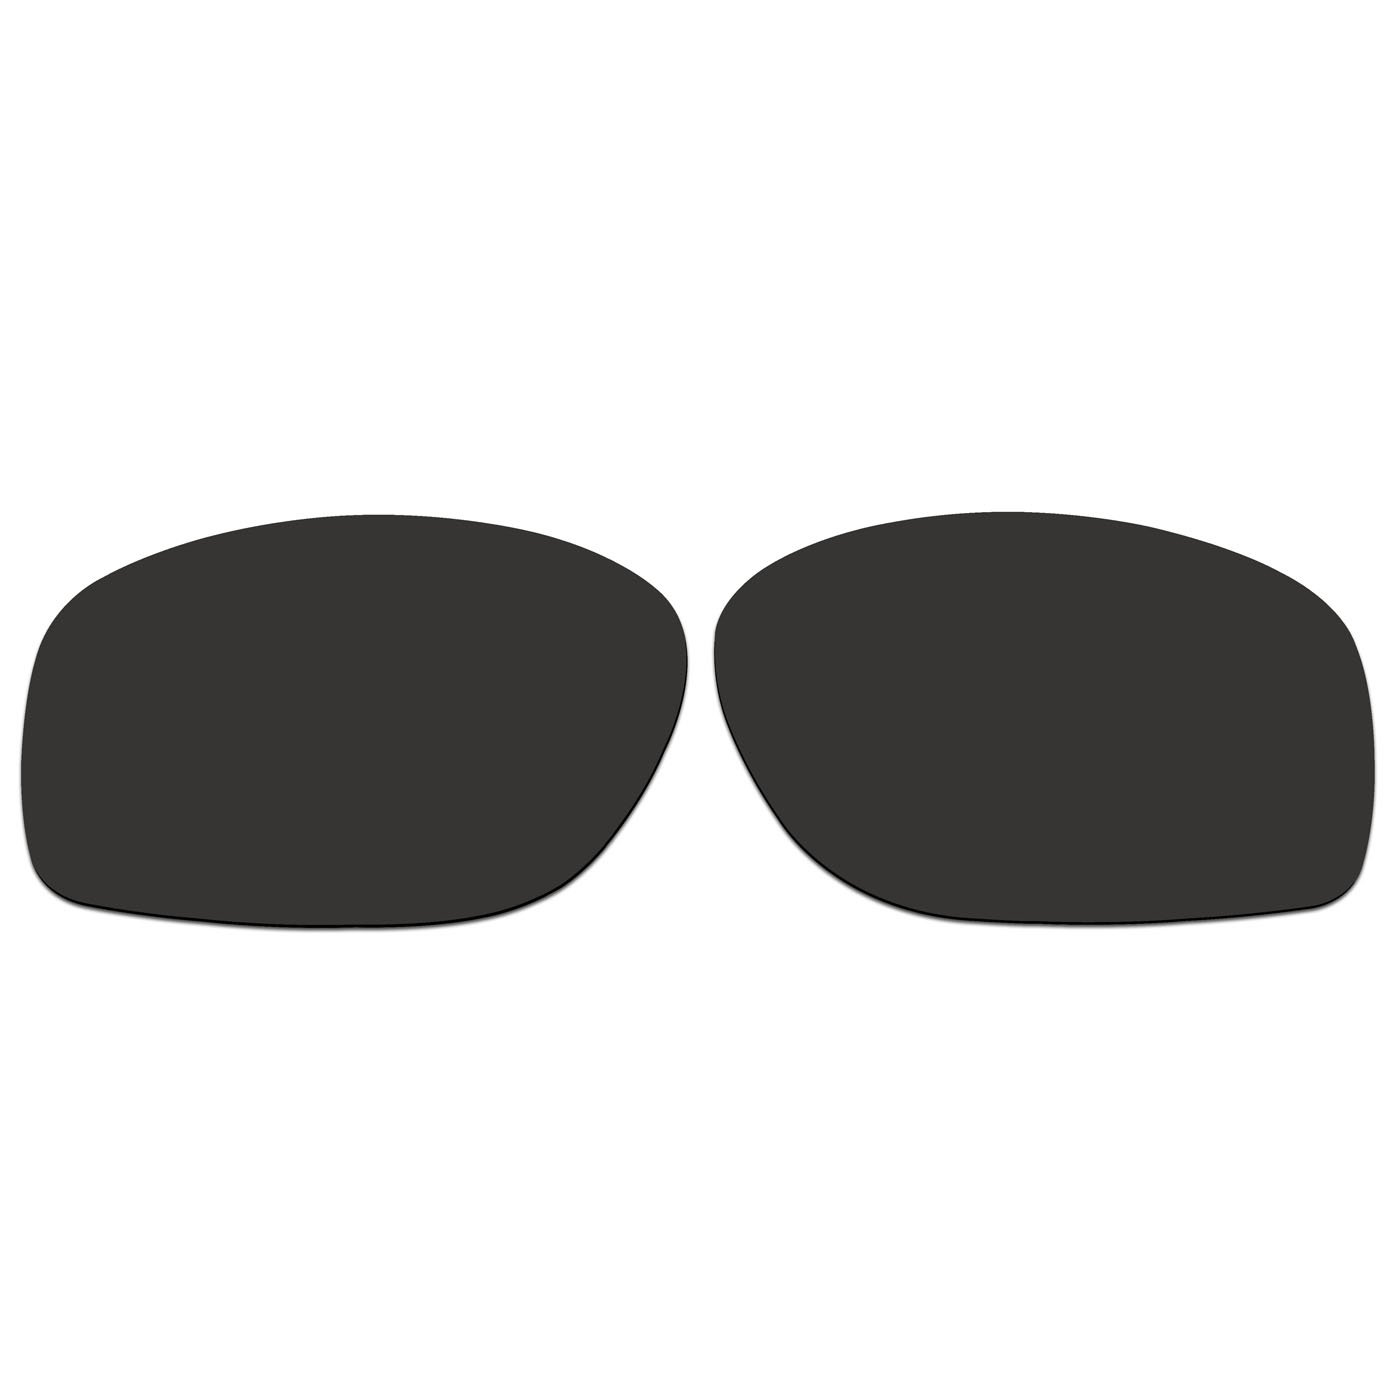 ACOMPATIBLE Replacement Lenses for Oakley Conductor 8 Sunglasses OO4107